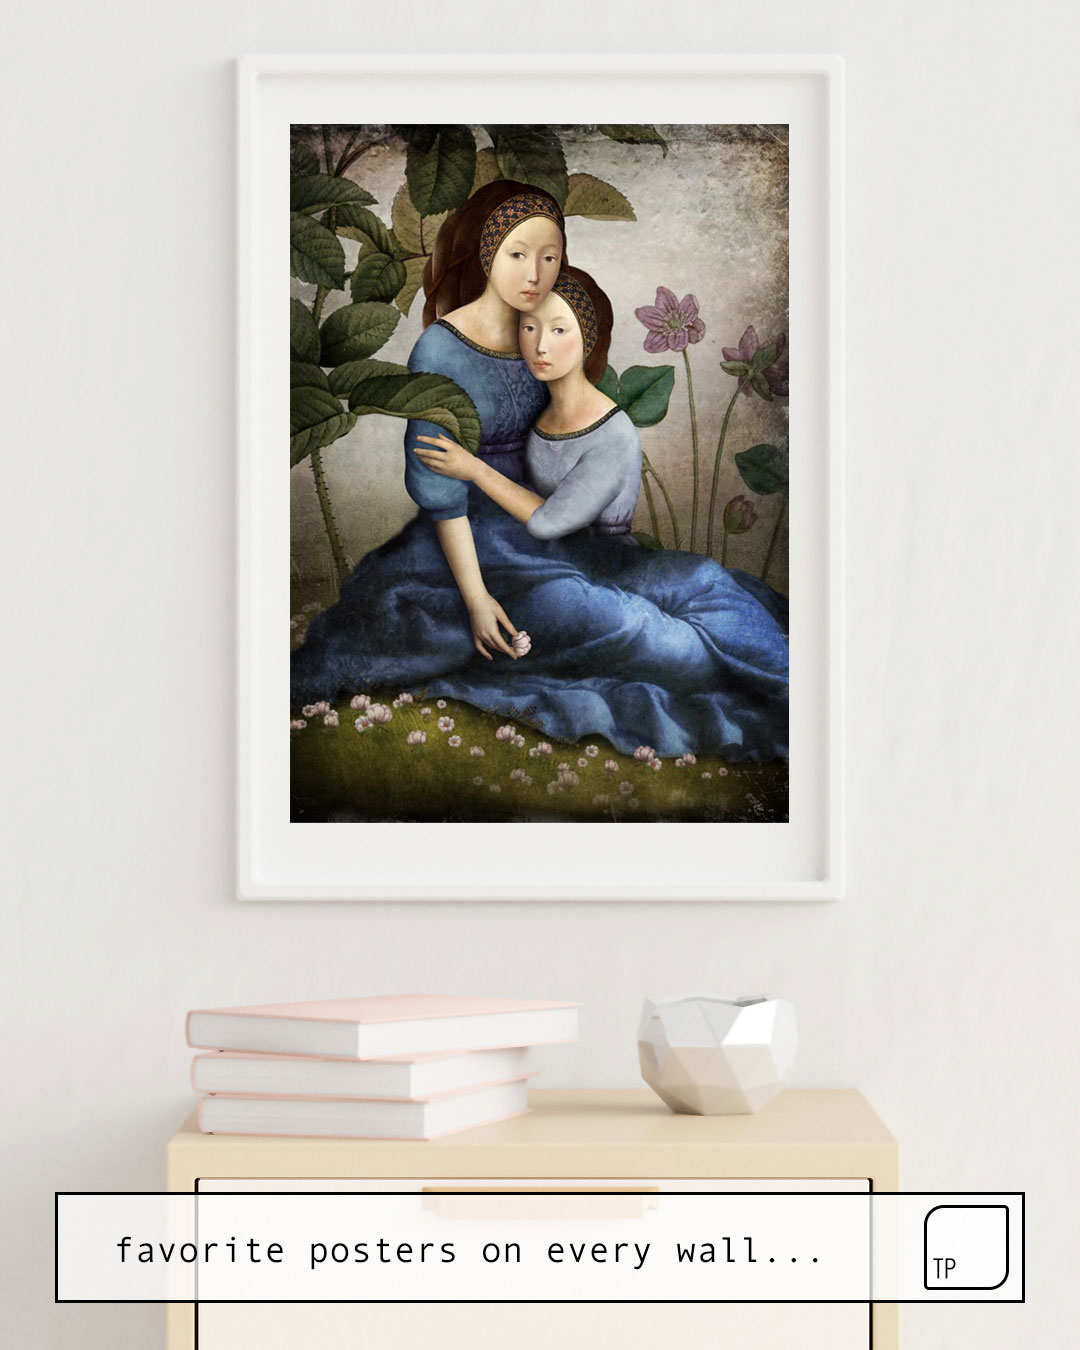 The photo shows an example of furnishing with the motif BY YOUR SIDE by Christian Schloe as mural